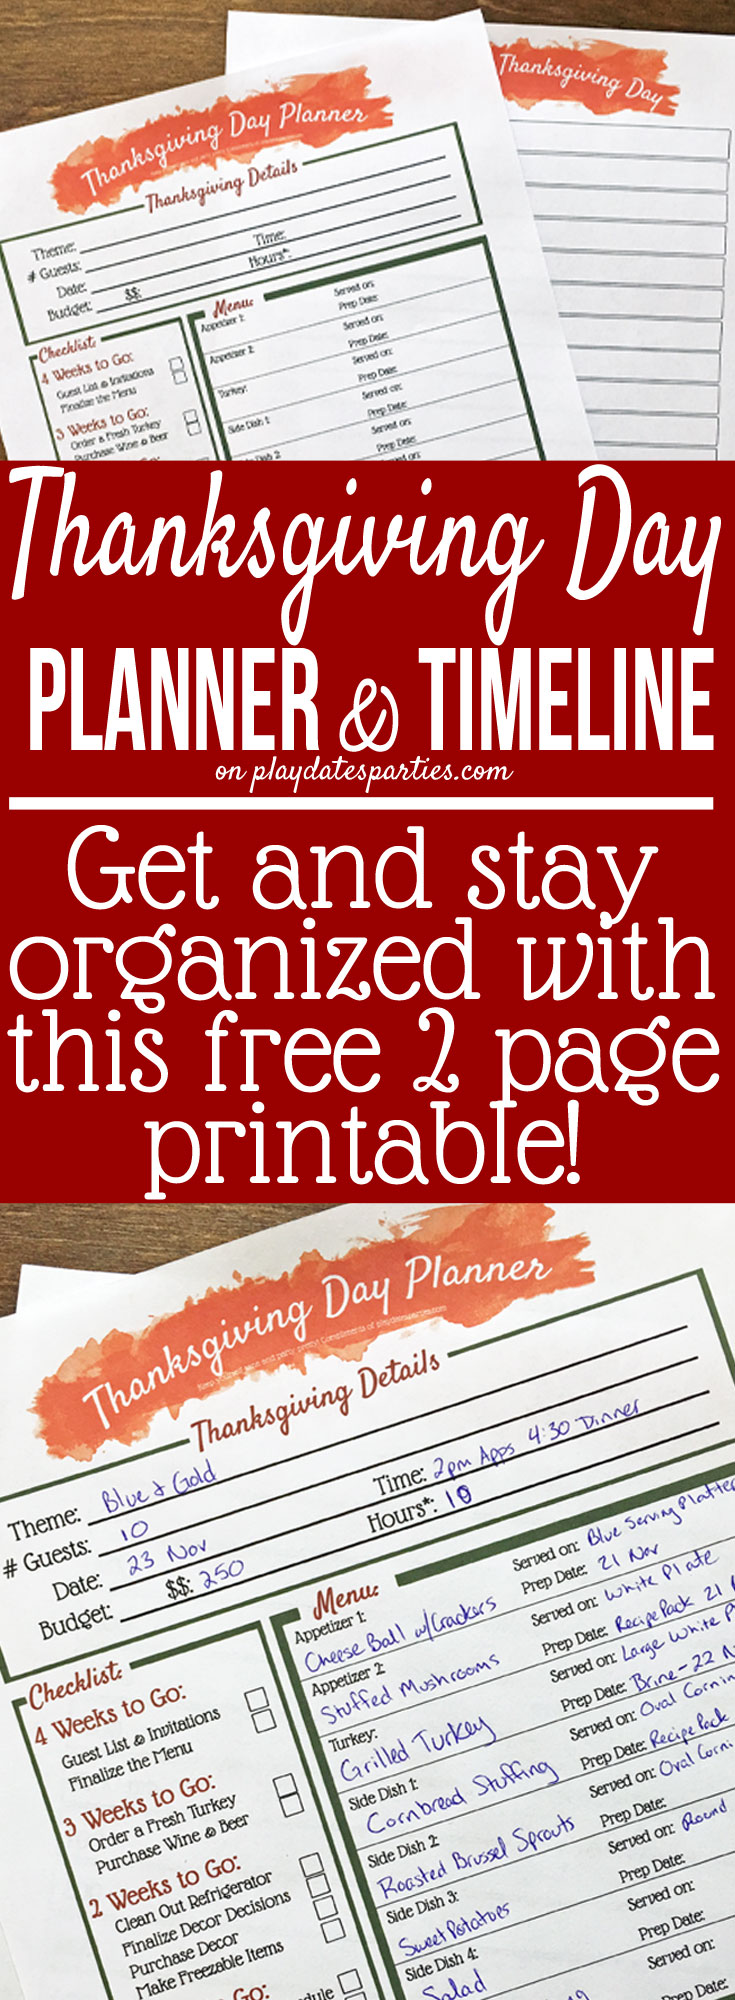 This free printable Thanksgiving dinner planner is the best way to get organized. With a 4-week #Thanksgiving checklist and timeline right alongside your Thanksgiving #Menu Planner, your holiday is sure to stay cool and calm!